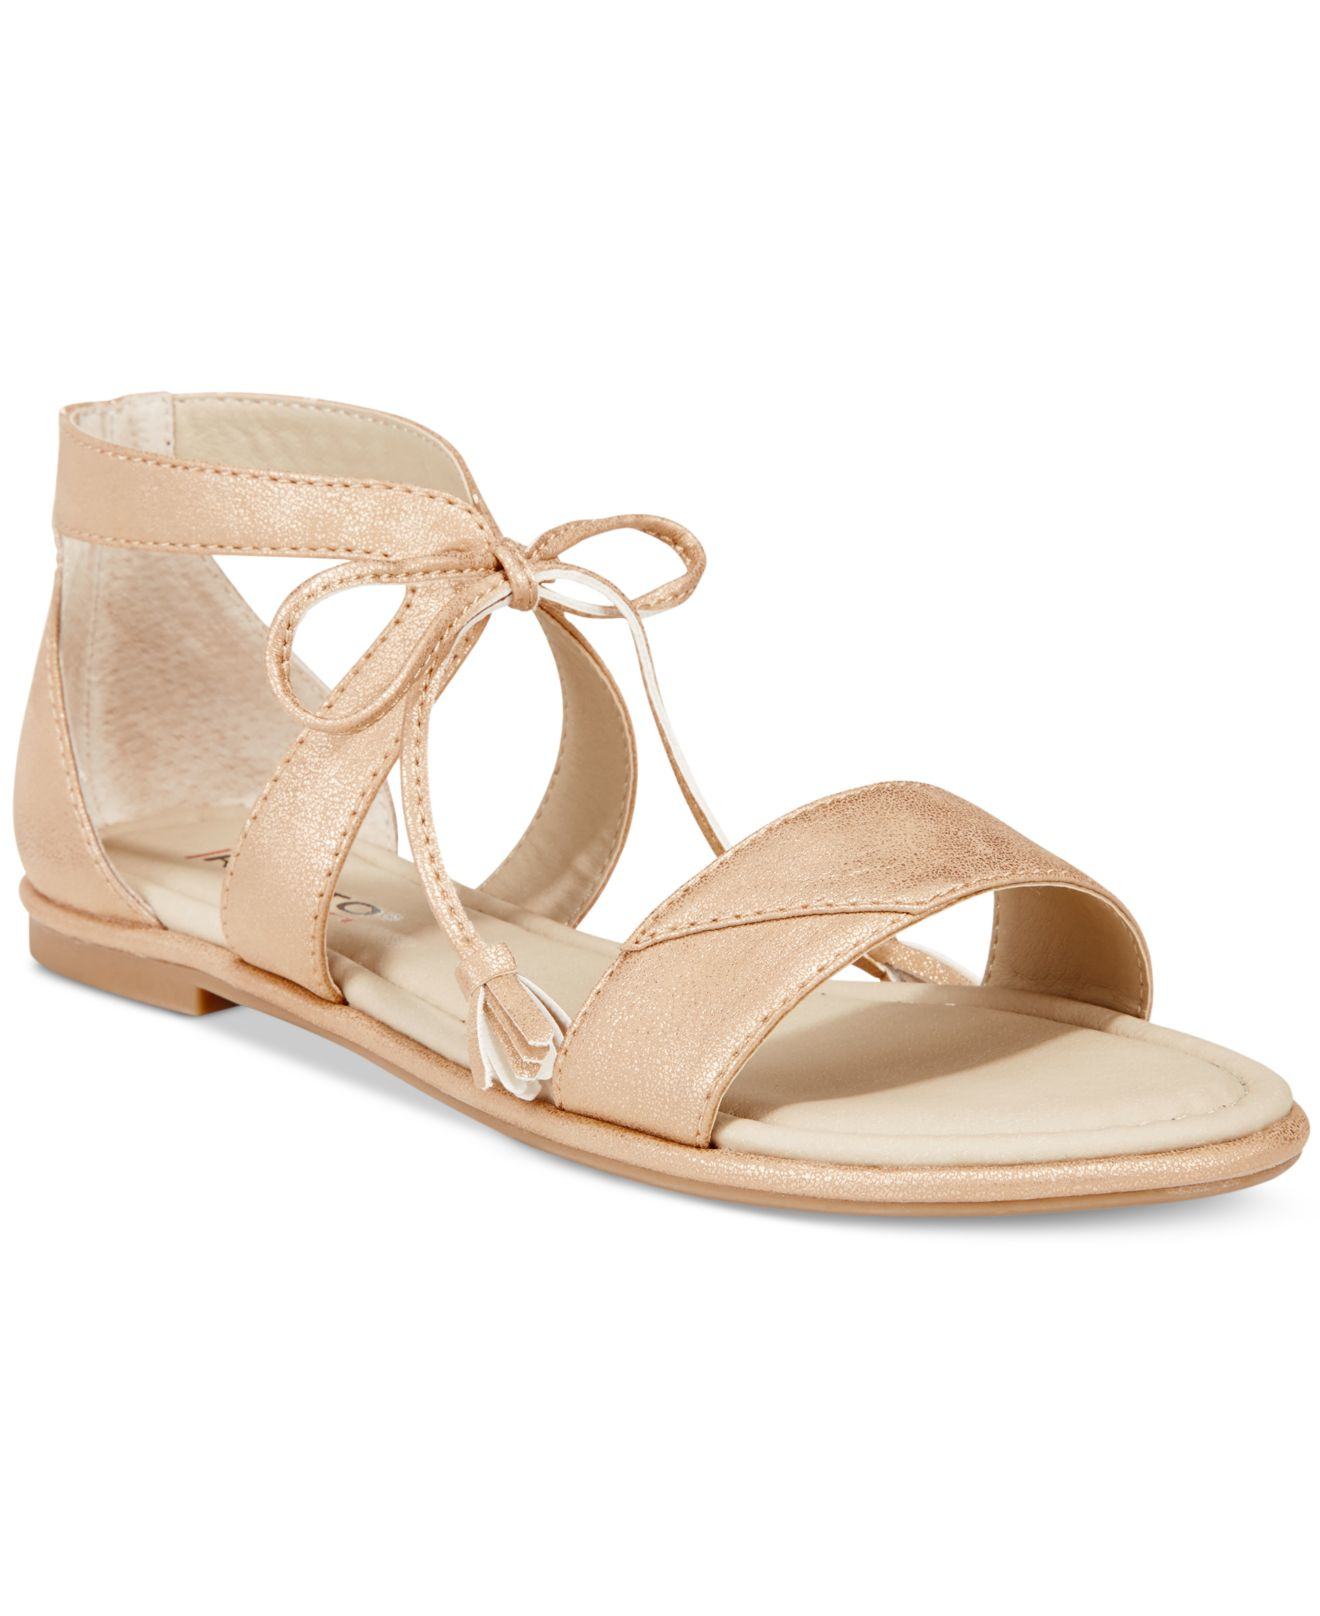 Rialto Robyn Lace-up Flat Sandals